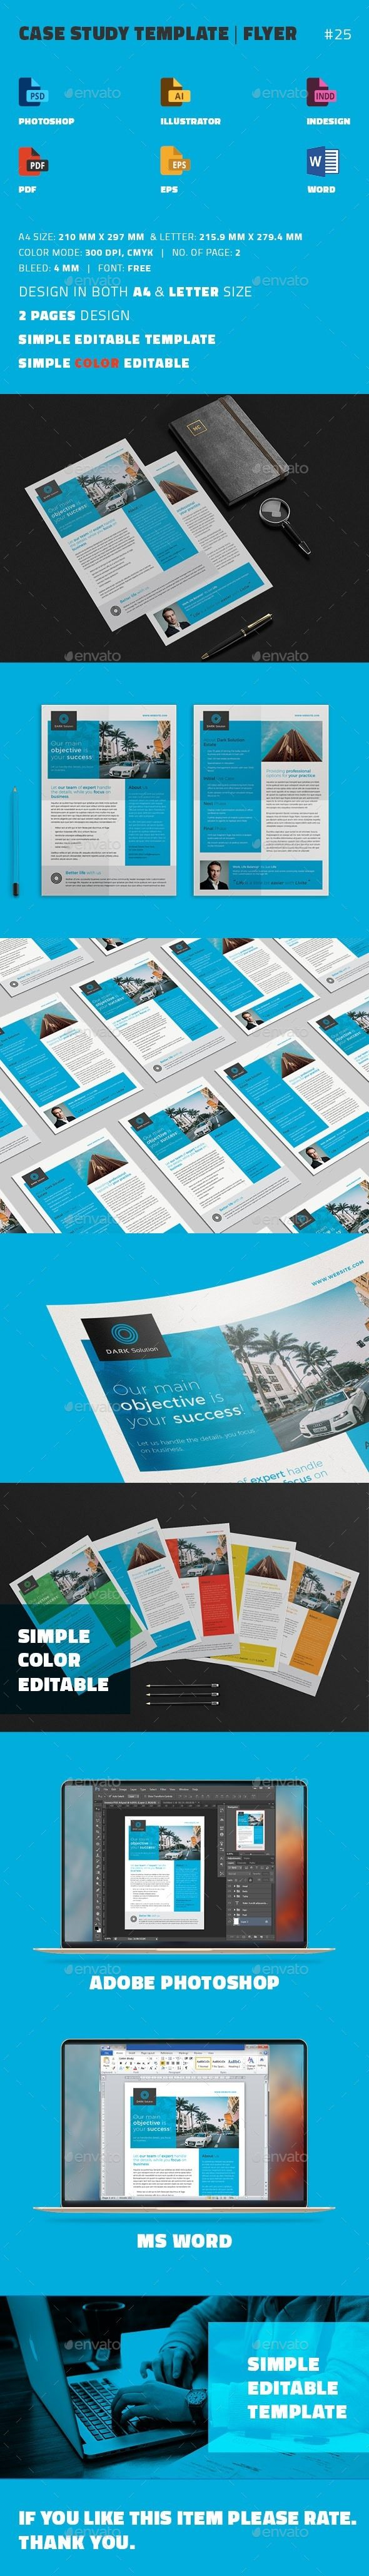 Best Case Study Templates Images On   Brochure